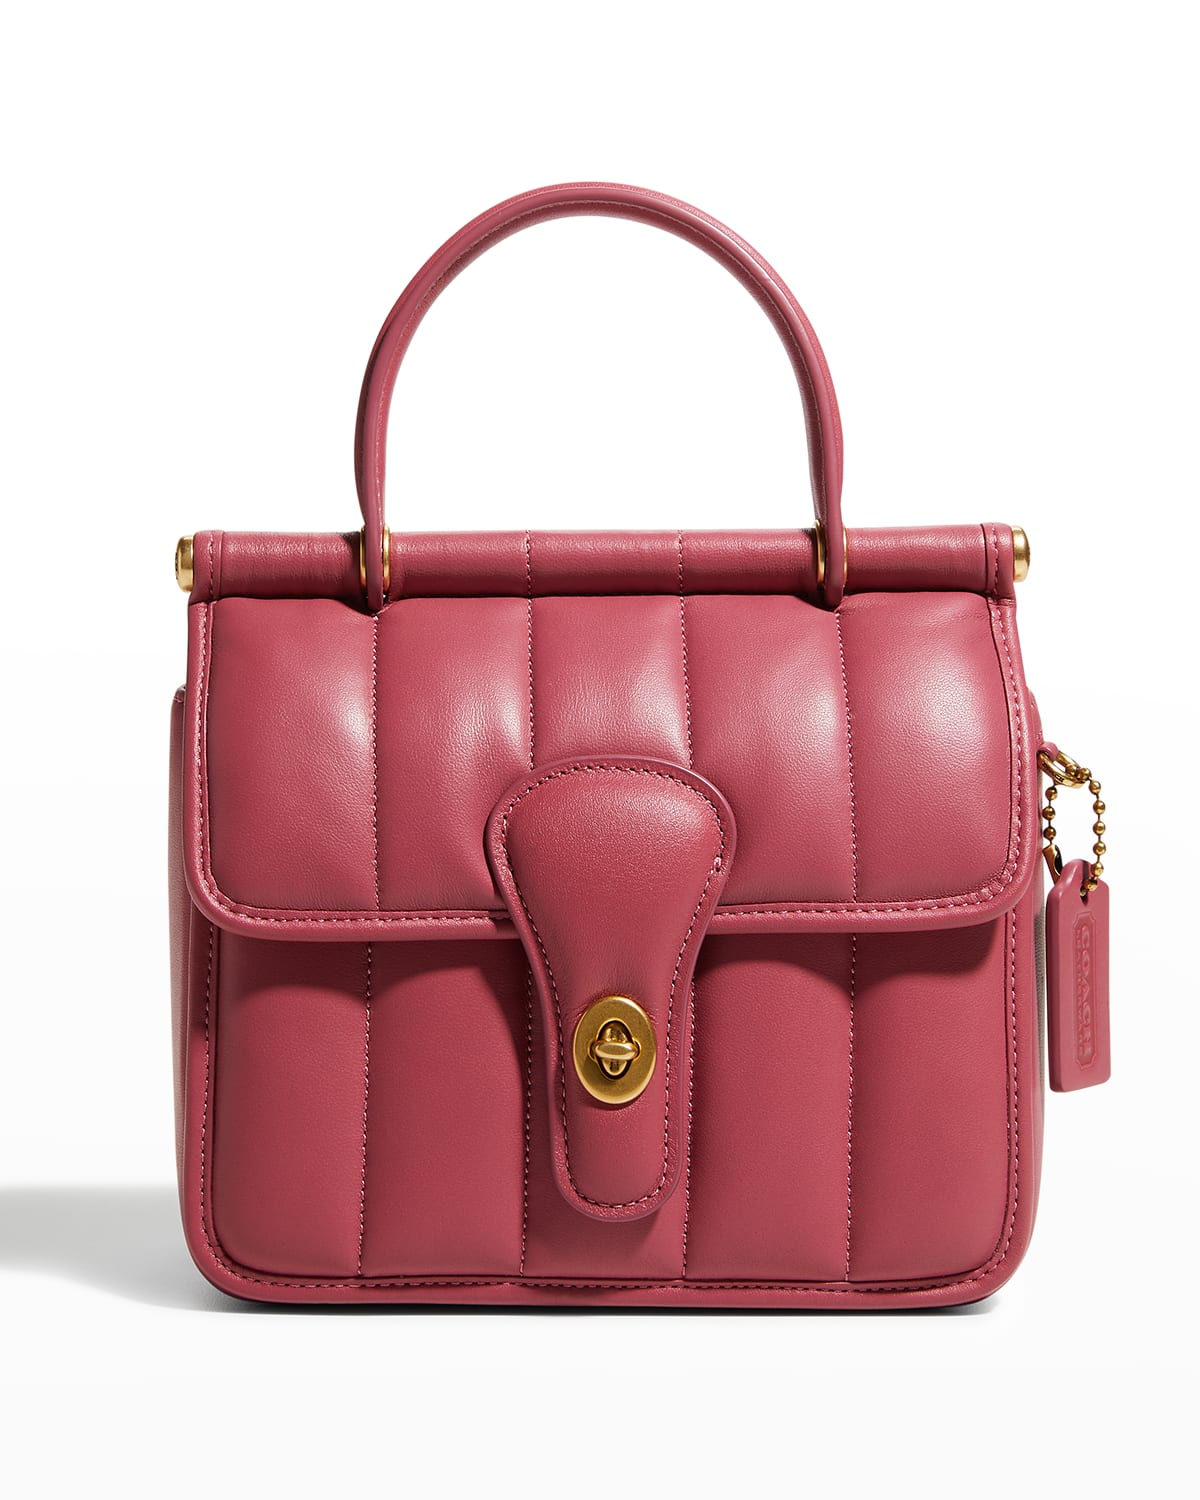 Willis 18 Quilted Leather Top-Handle Bag